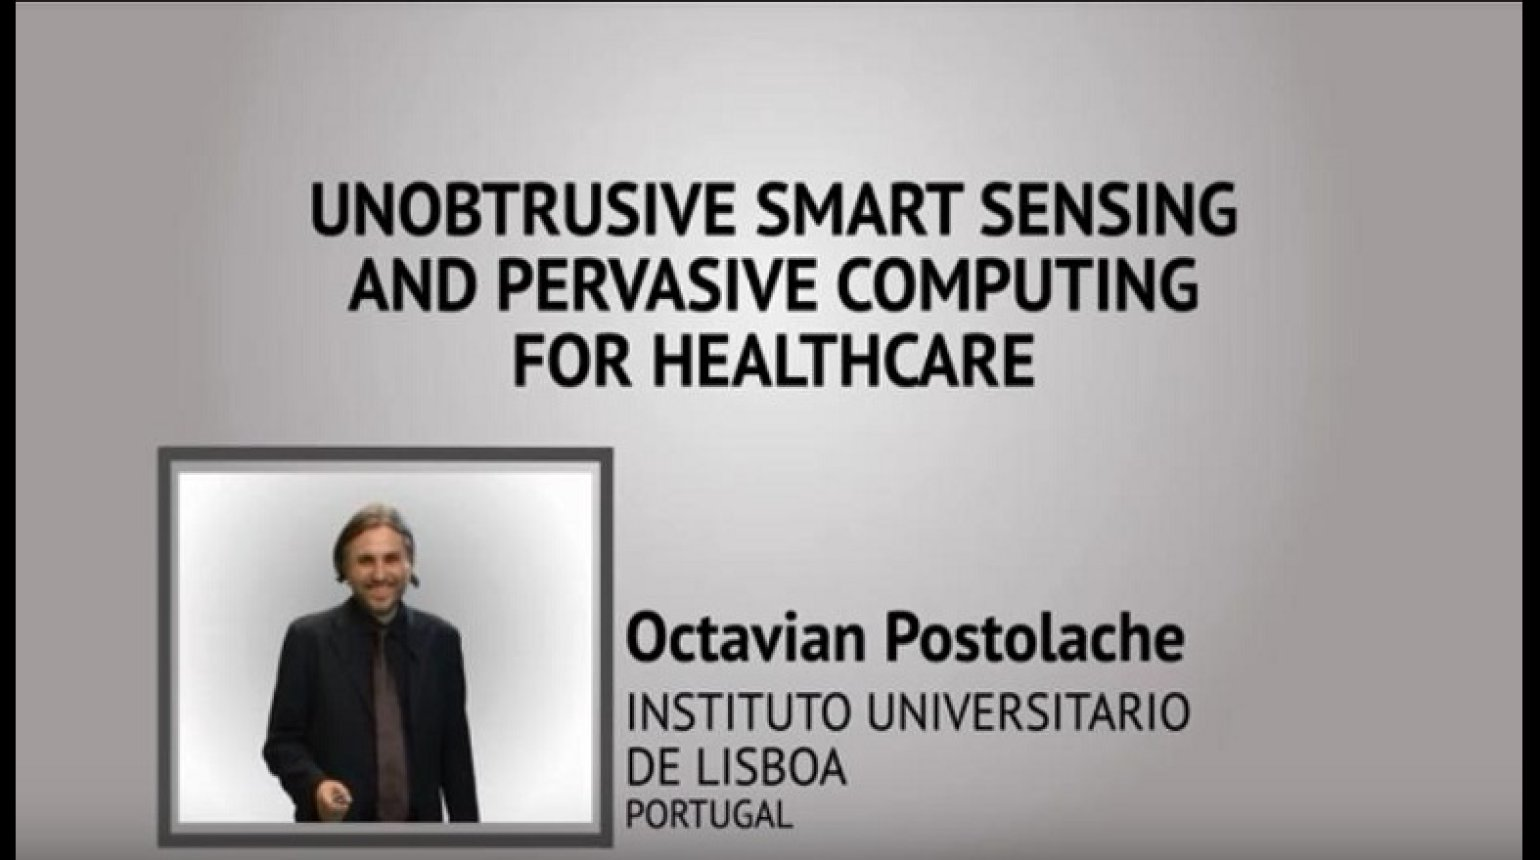 Unobtrusive Smart Sensing and Pervasive Computiner for Healthcare